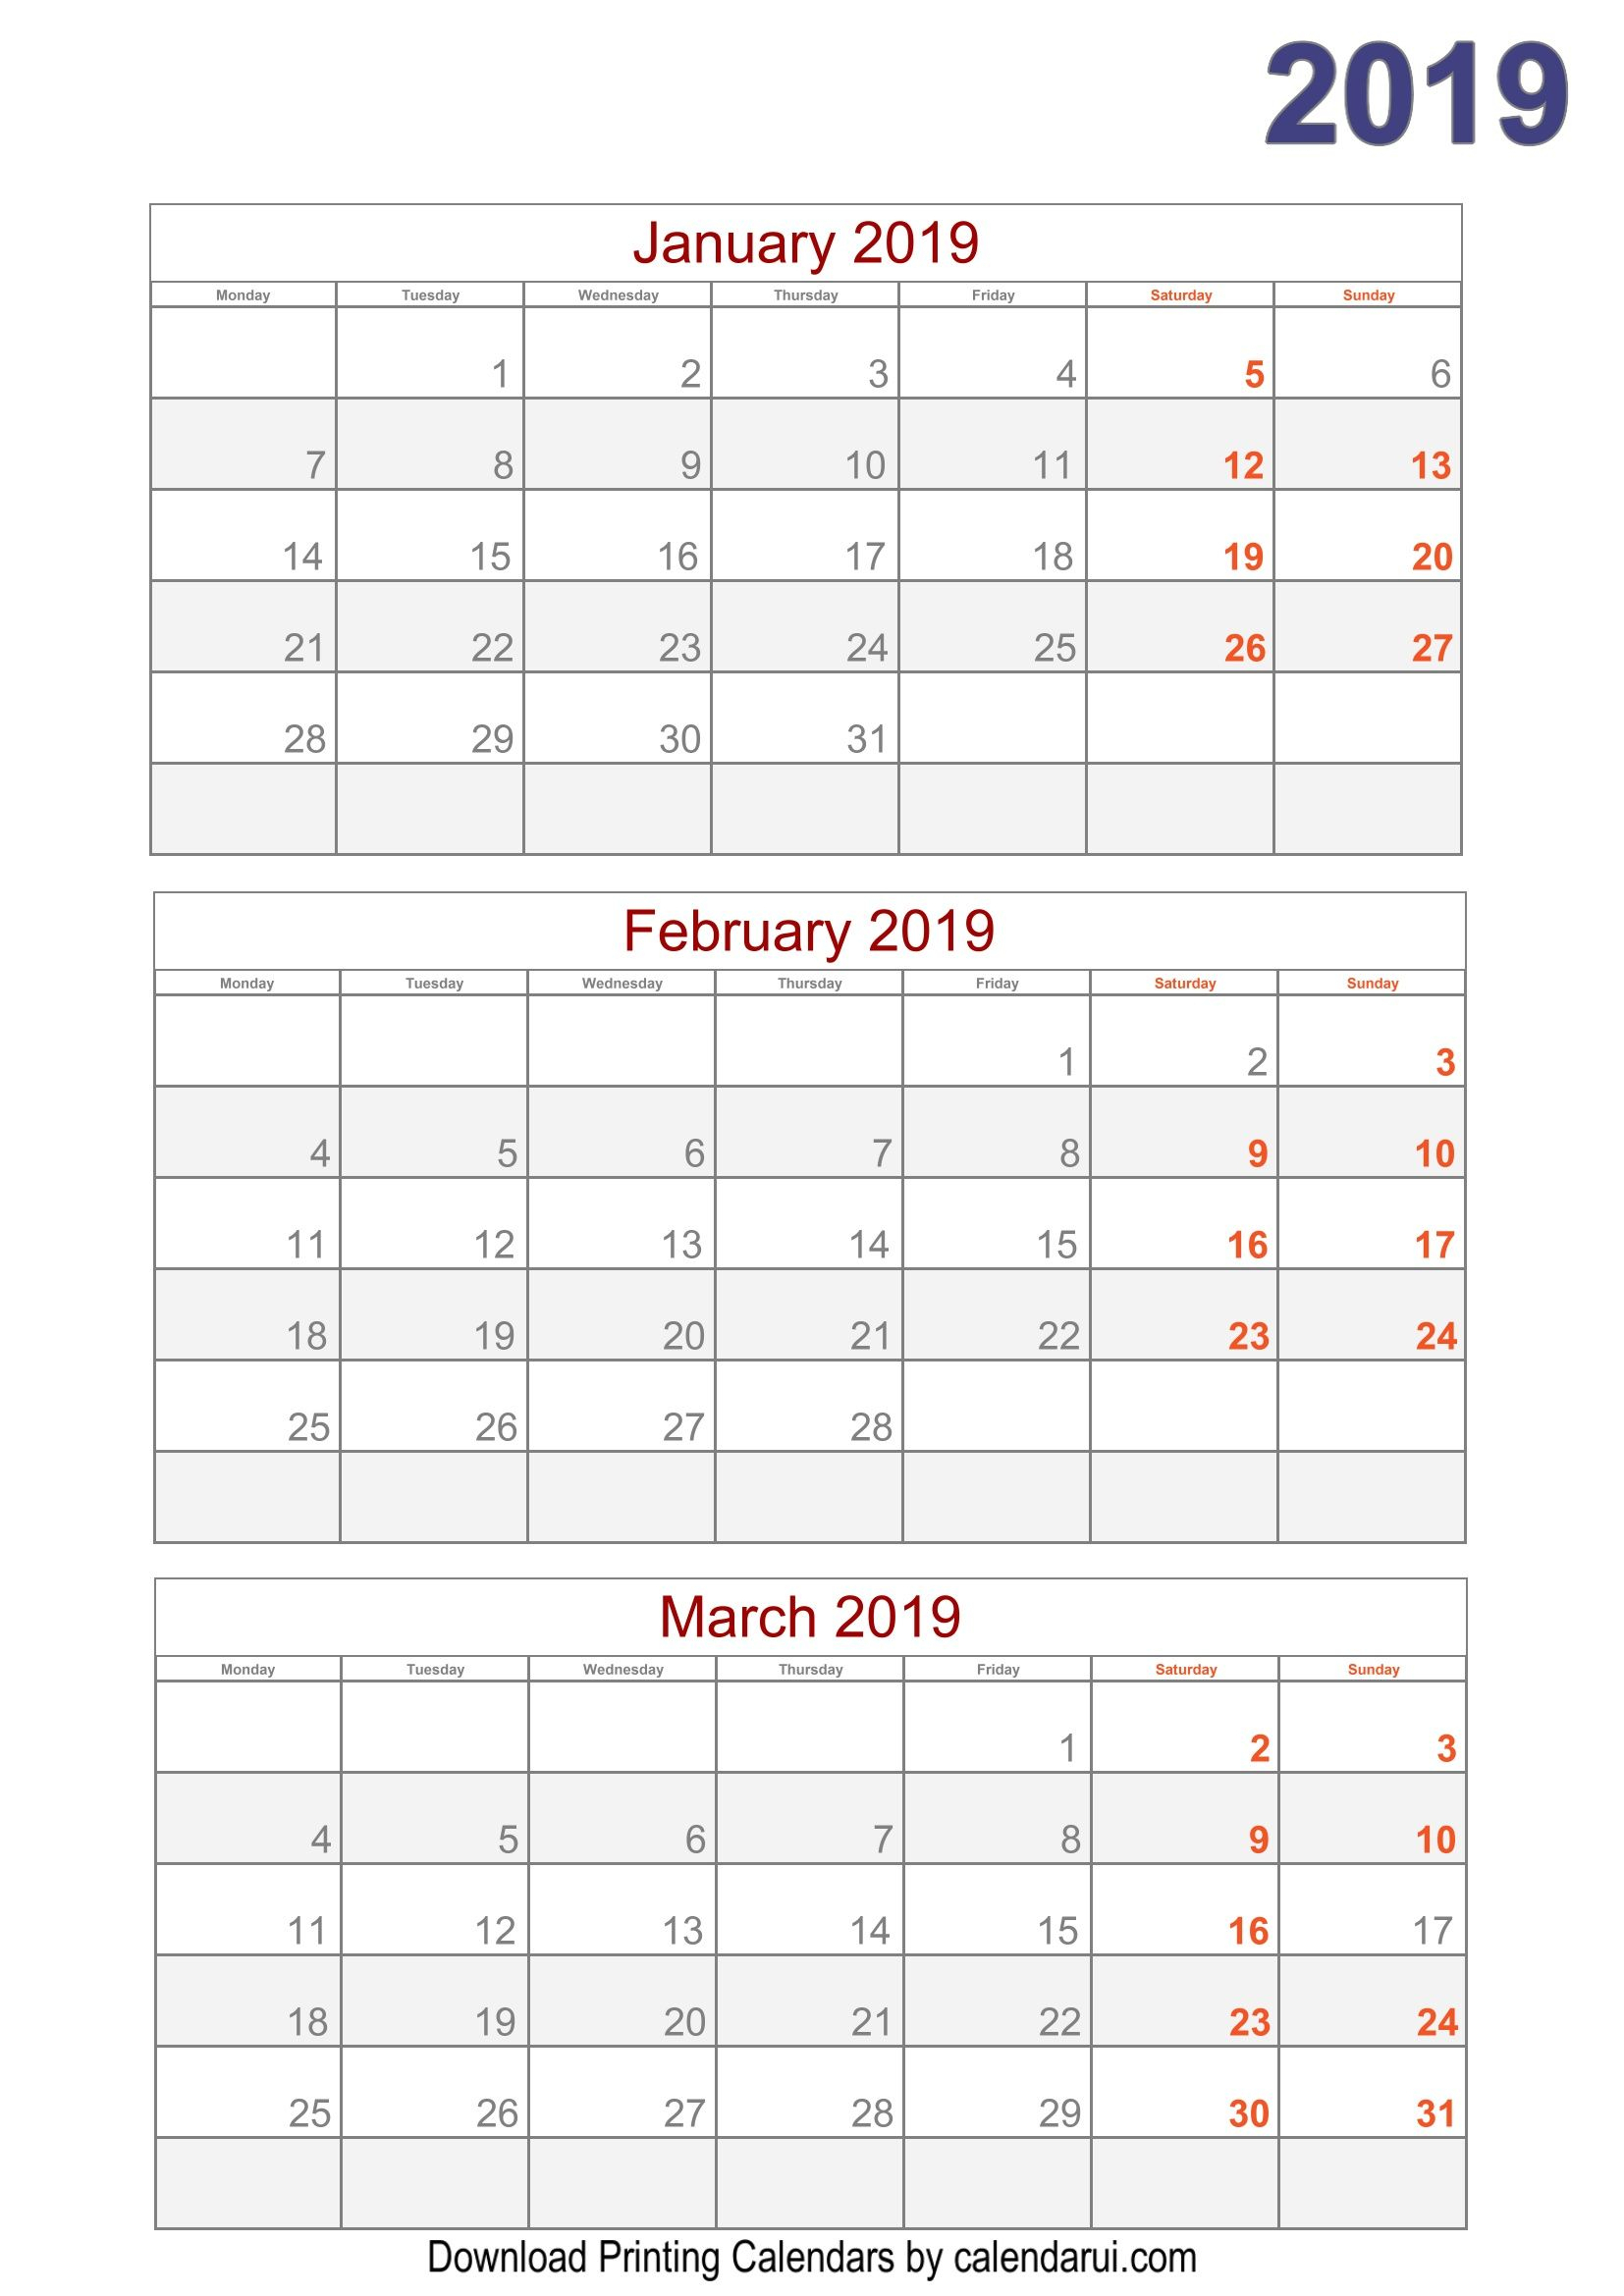 2019 Quarterly Calendar Printable For Free | Quarterly